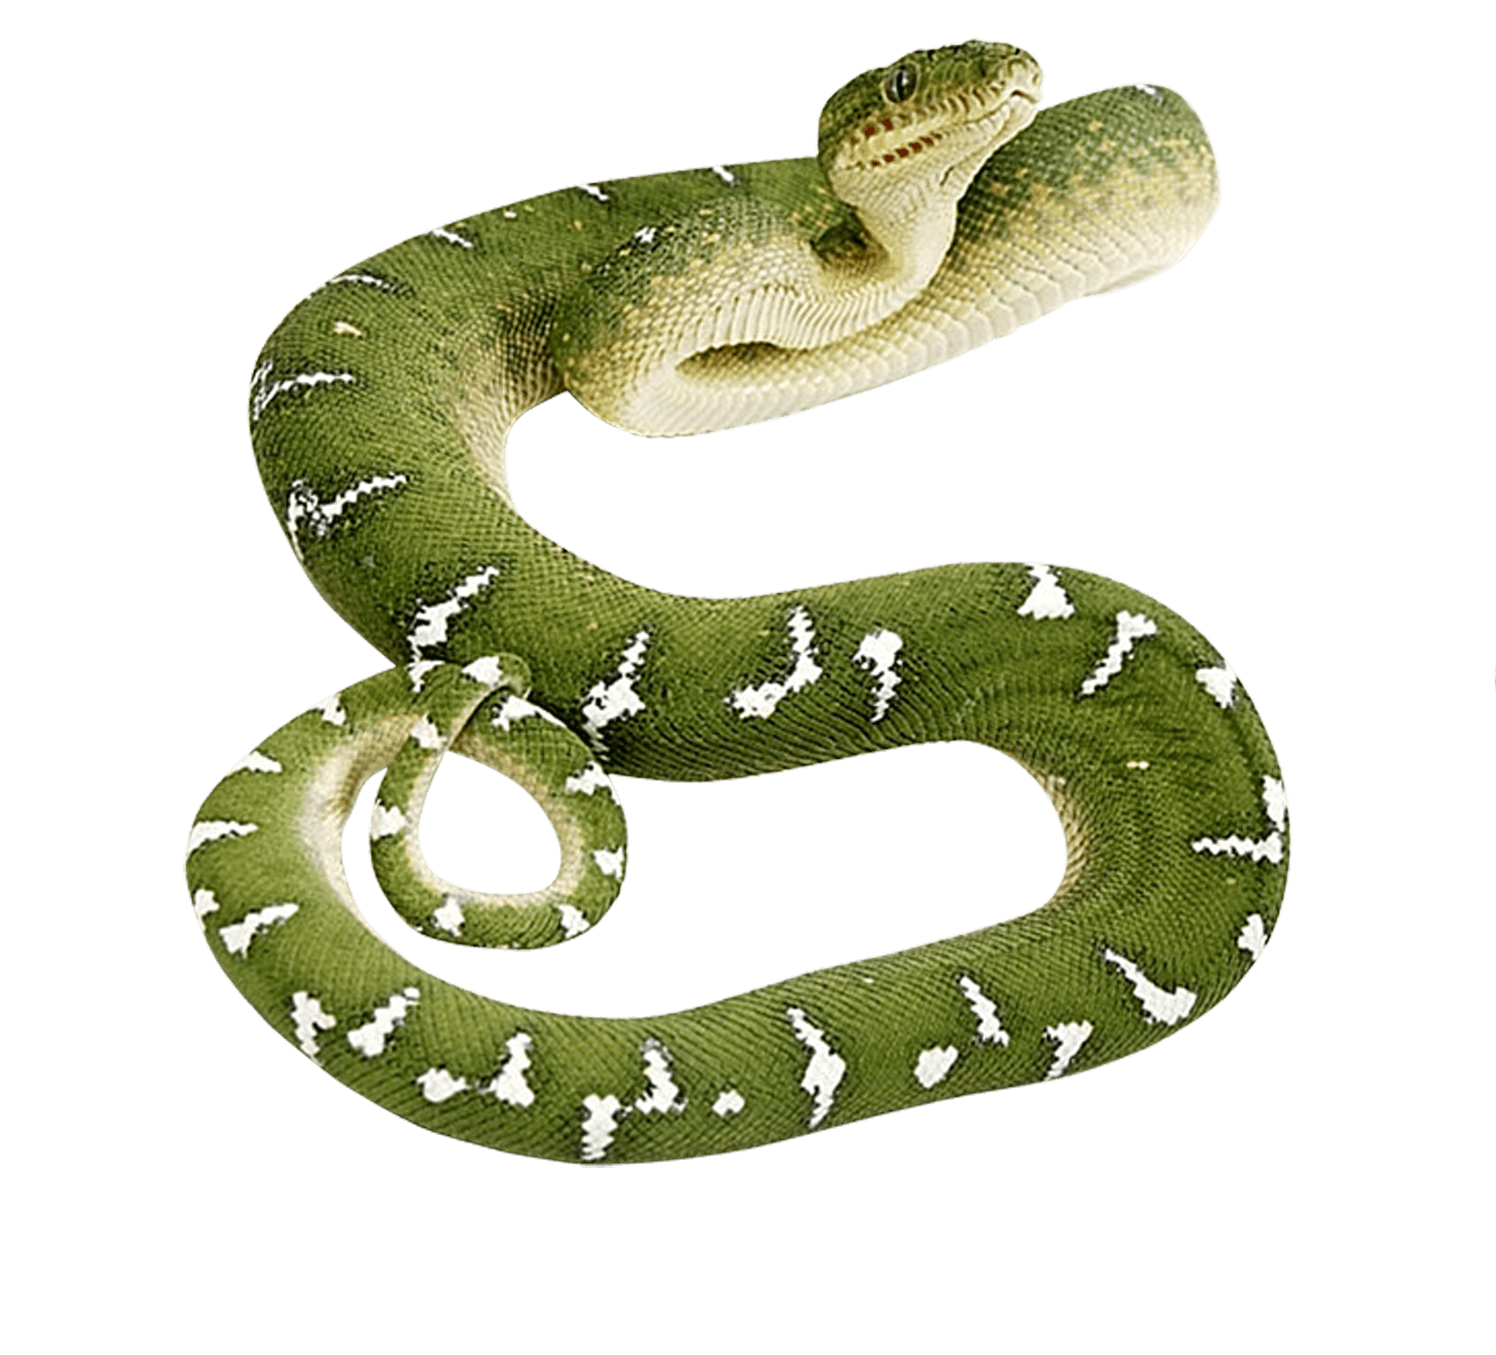 Snake clipart tail. Tree rat free on